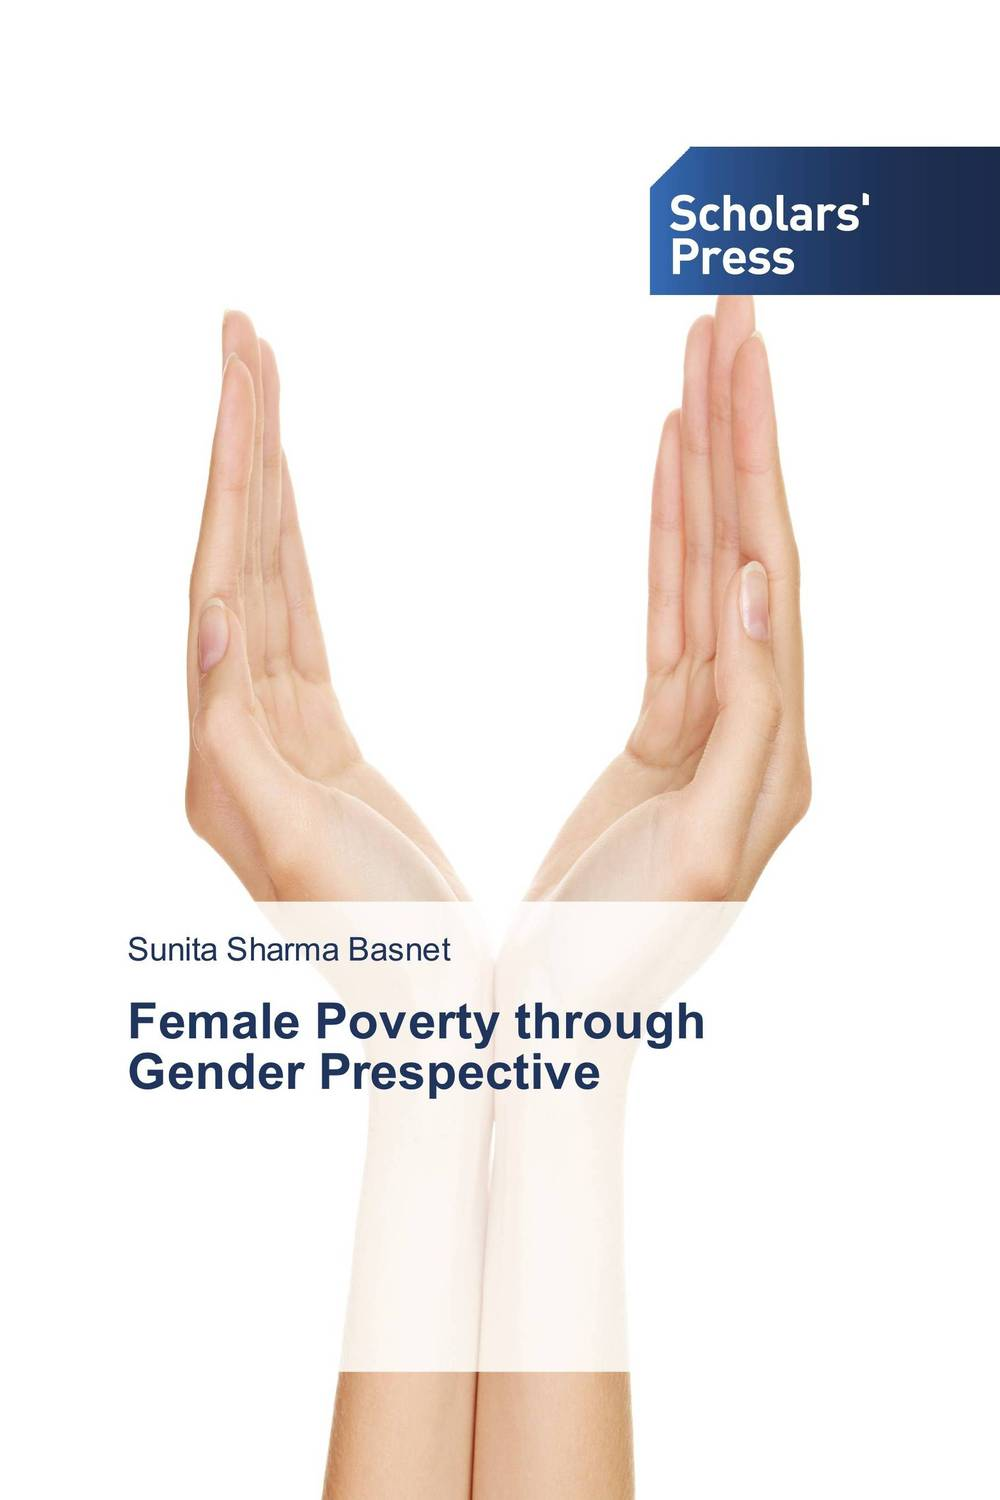 Female Poverty through Gender Prespective roles of selenium in farms and in human health